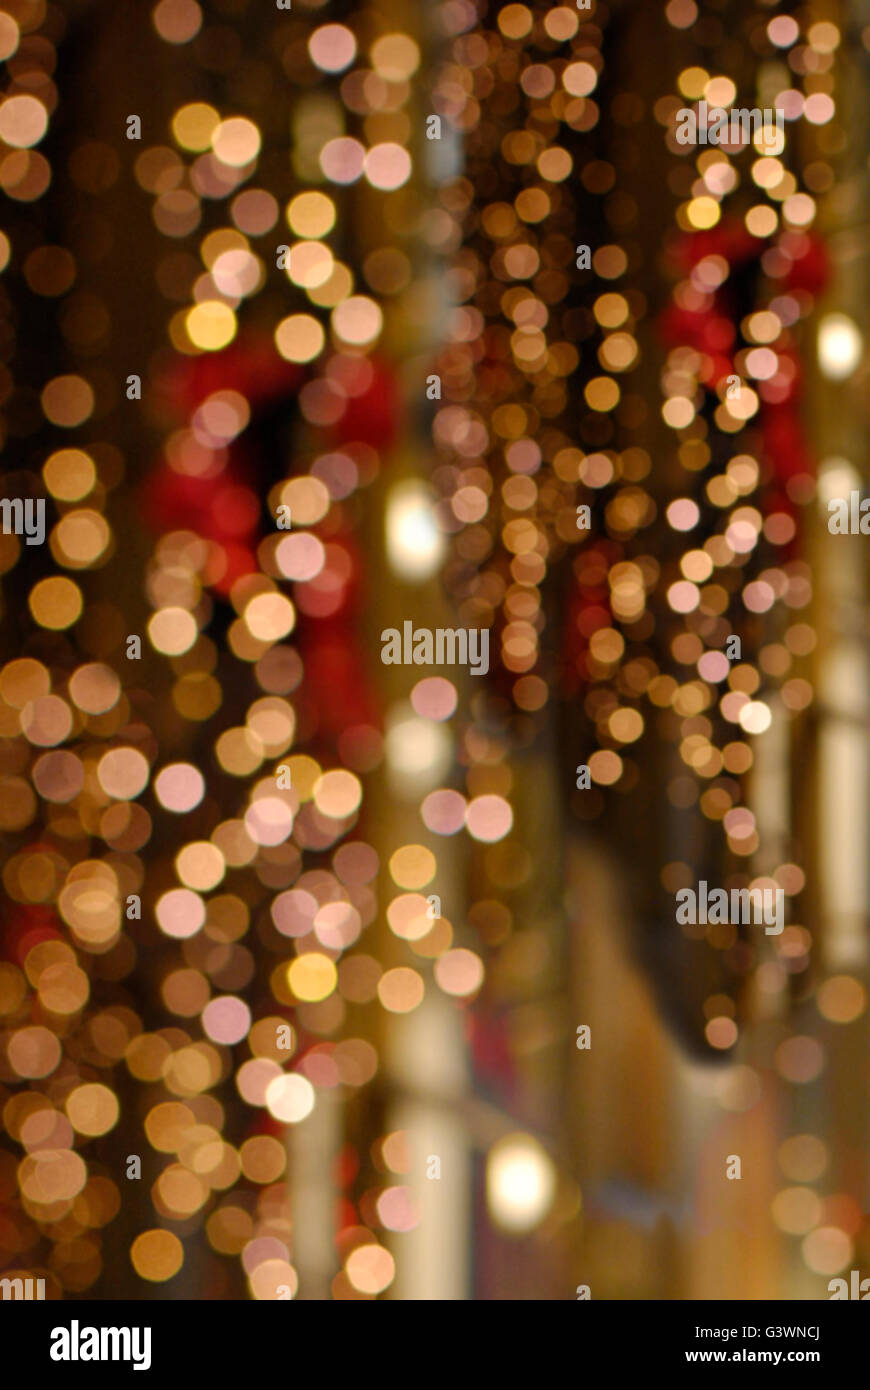 multicolored christmas lights blurred stock photo 105671794 alamy